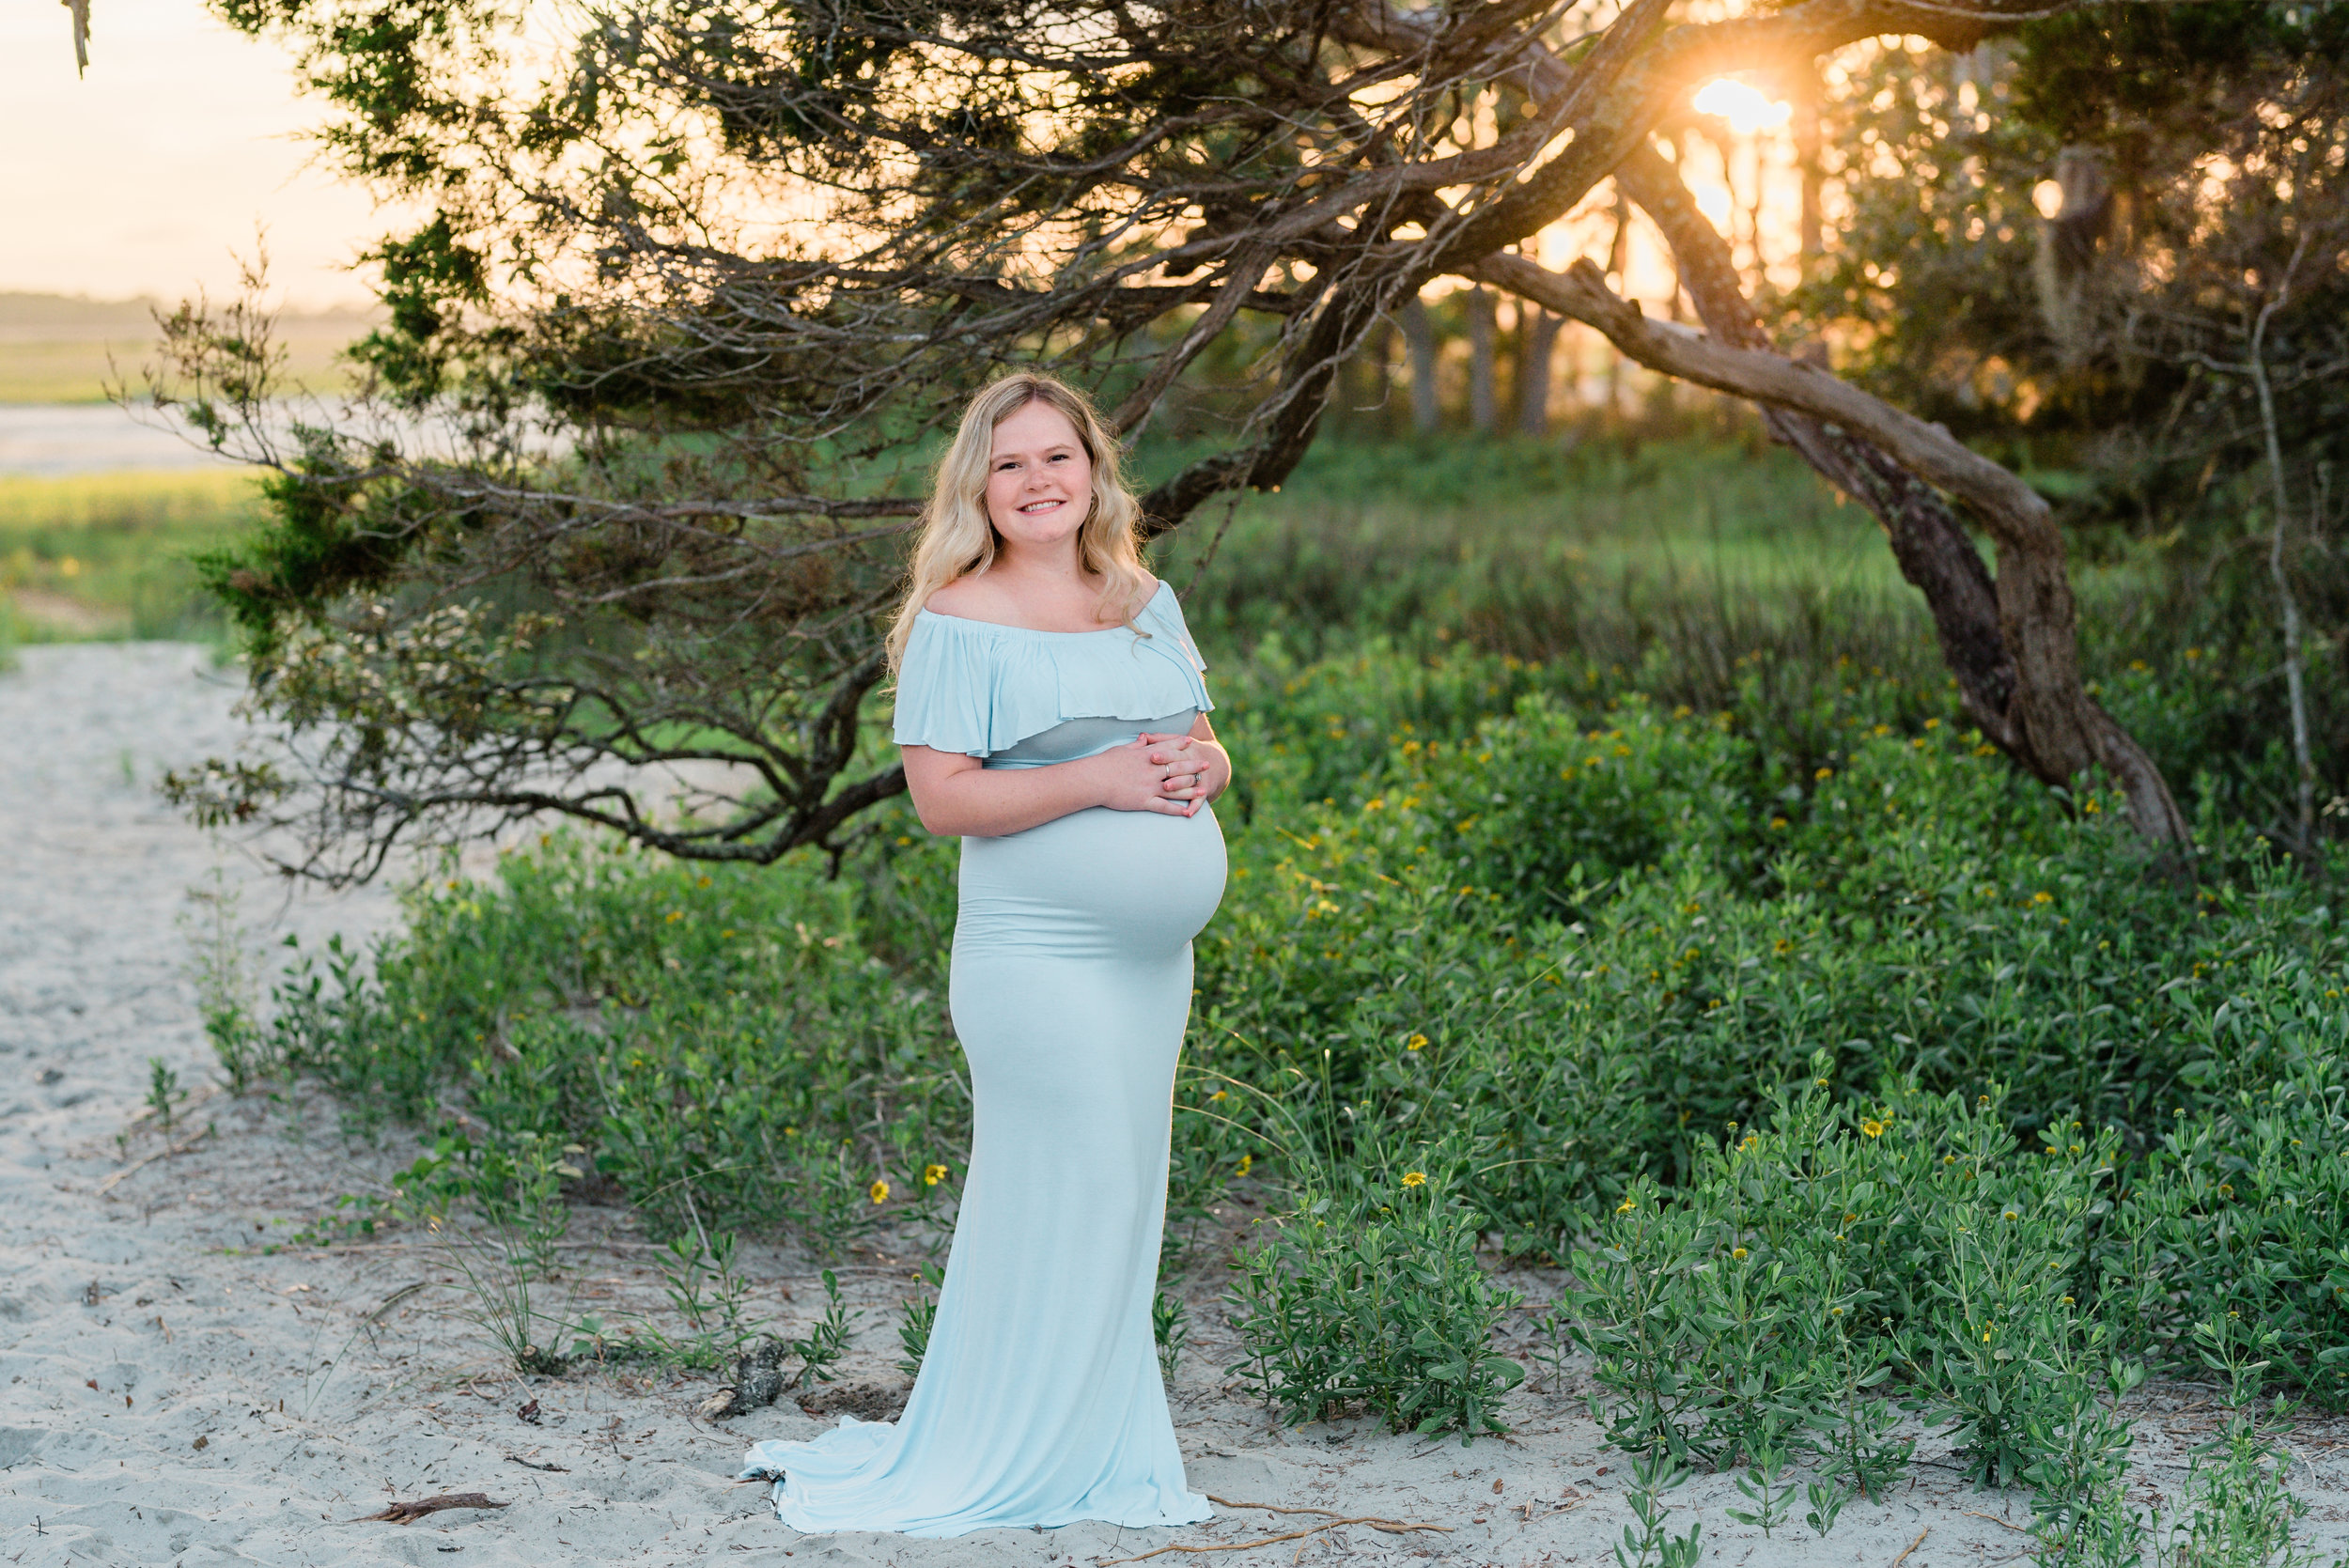 Folly-Beach-Maternity-Photographer-Following-Seas-Photography-2927 copy.jpg